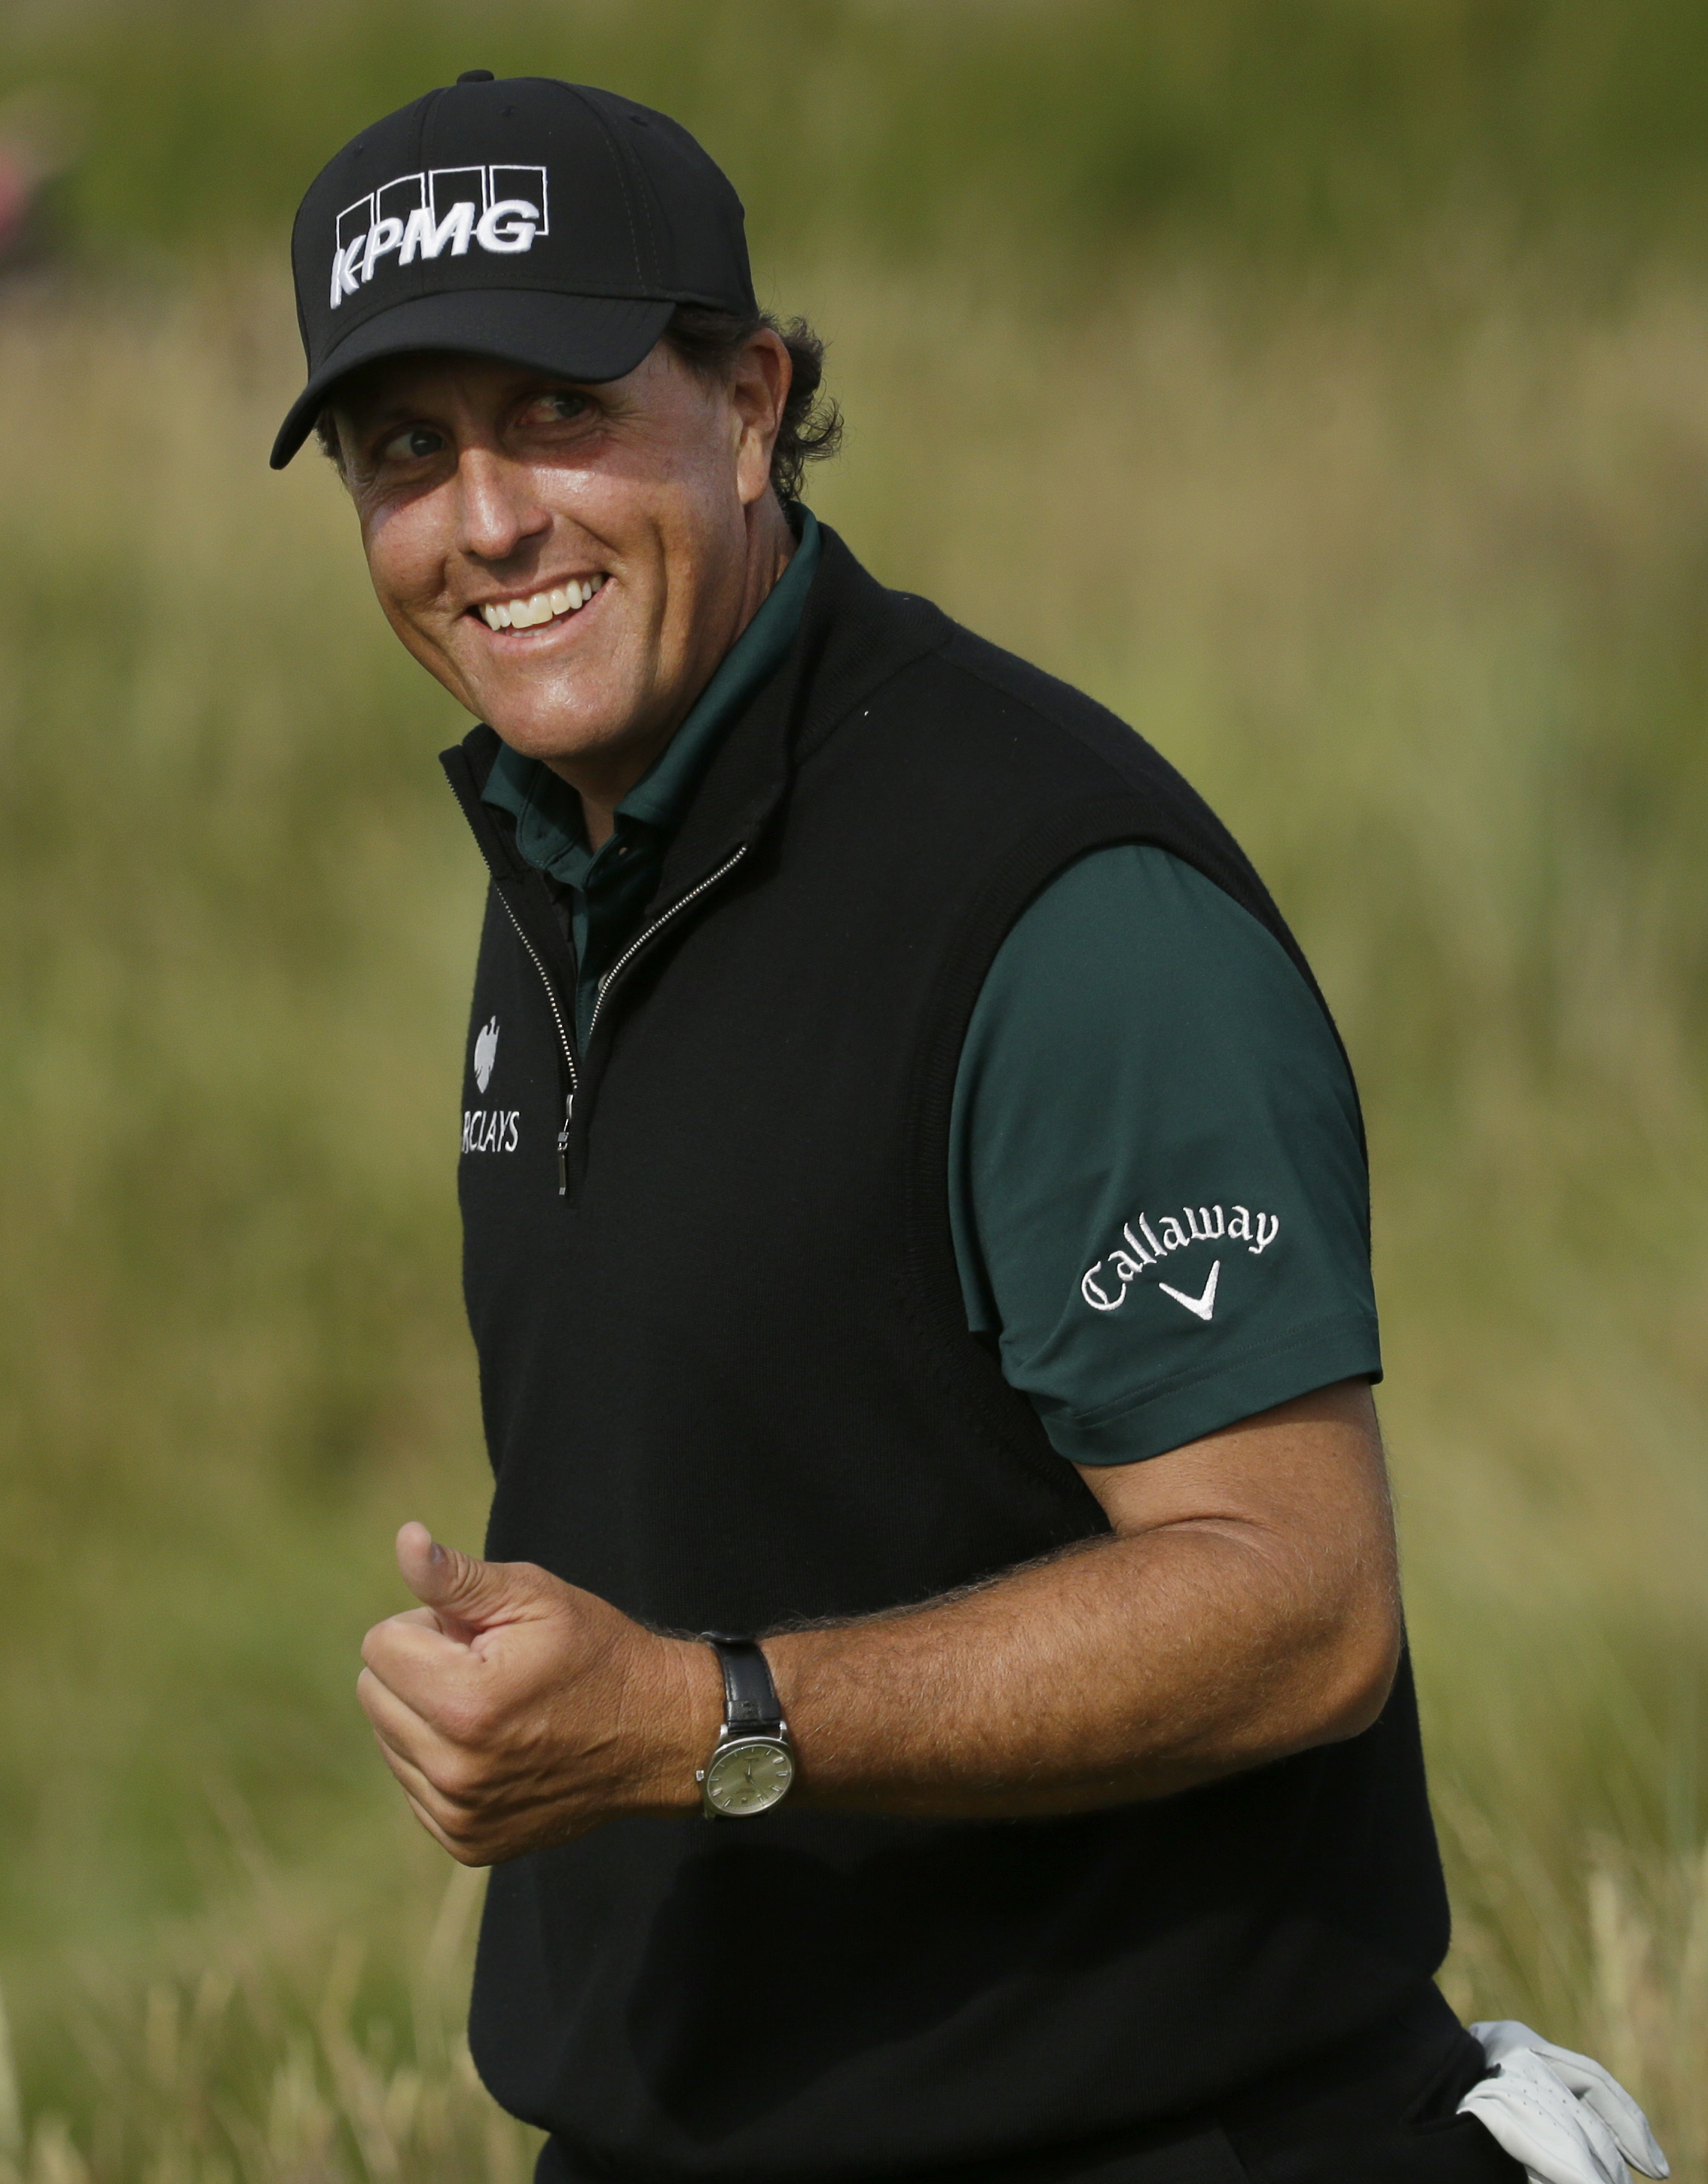 Phil Mickelson of the United States smiles as he walks down the 17th fairway during the first round of the British Open Golf Championship at the Royal Troon Golf Club in Troon, Scotland, Thursday, July 14, 2016. (AP Photo/Matt Dunham)